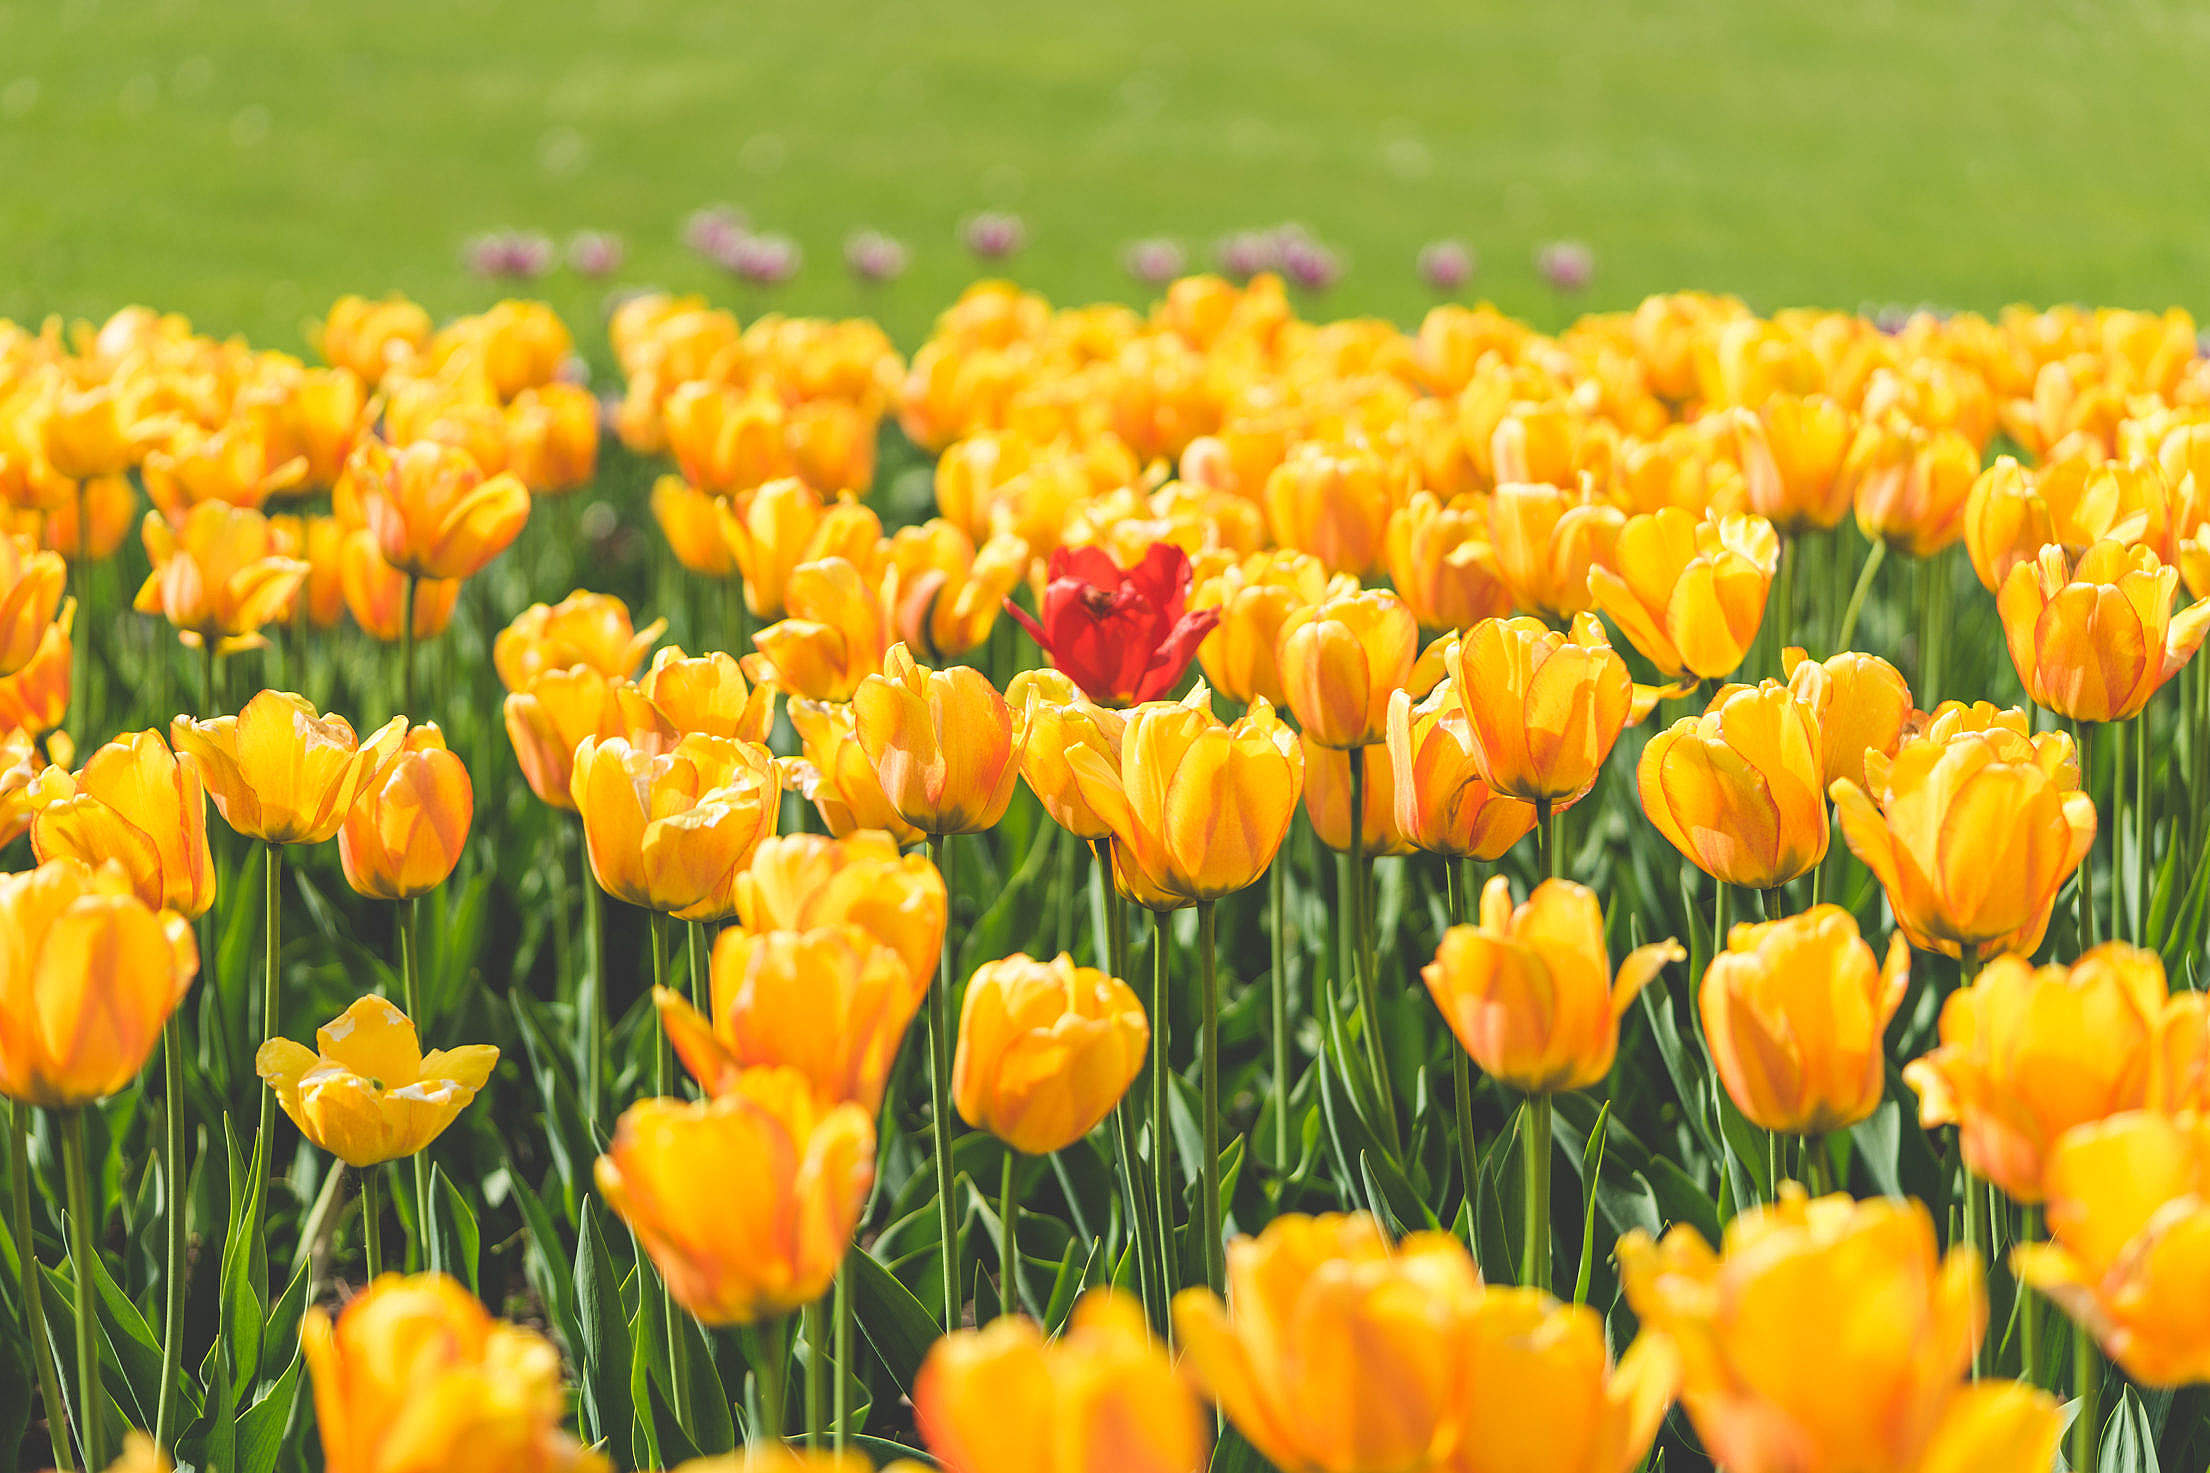 One Red Tulip Flower Surrounded by Yellow Tulips Free Stock Photo